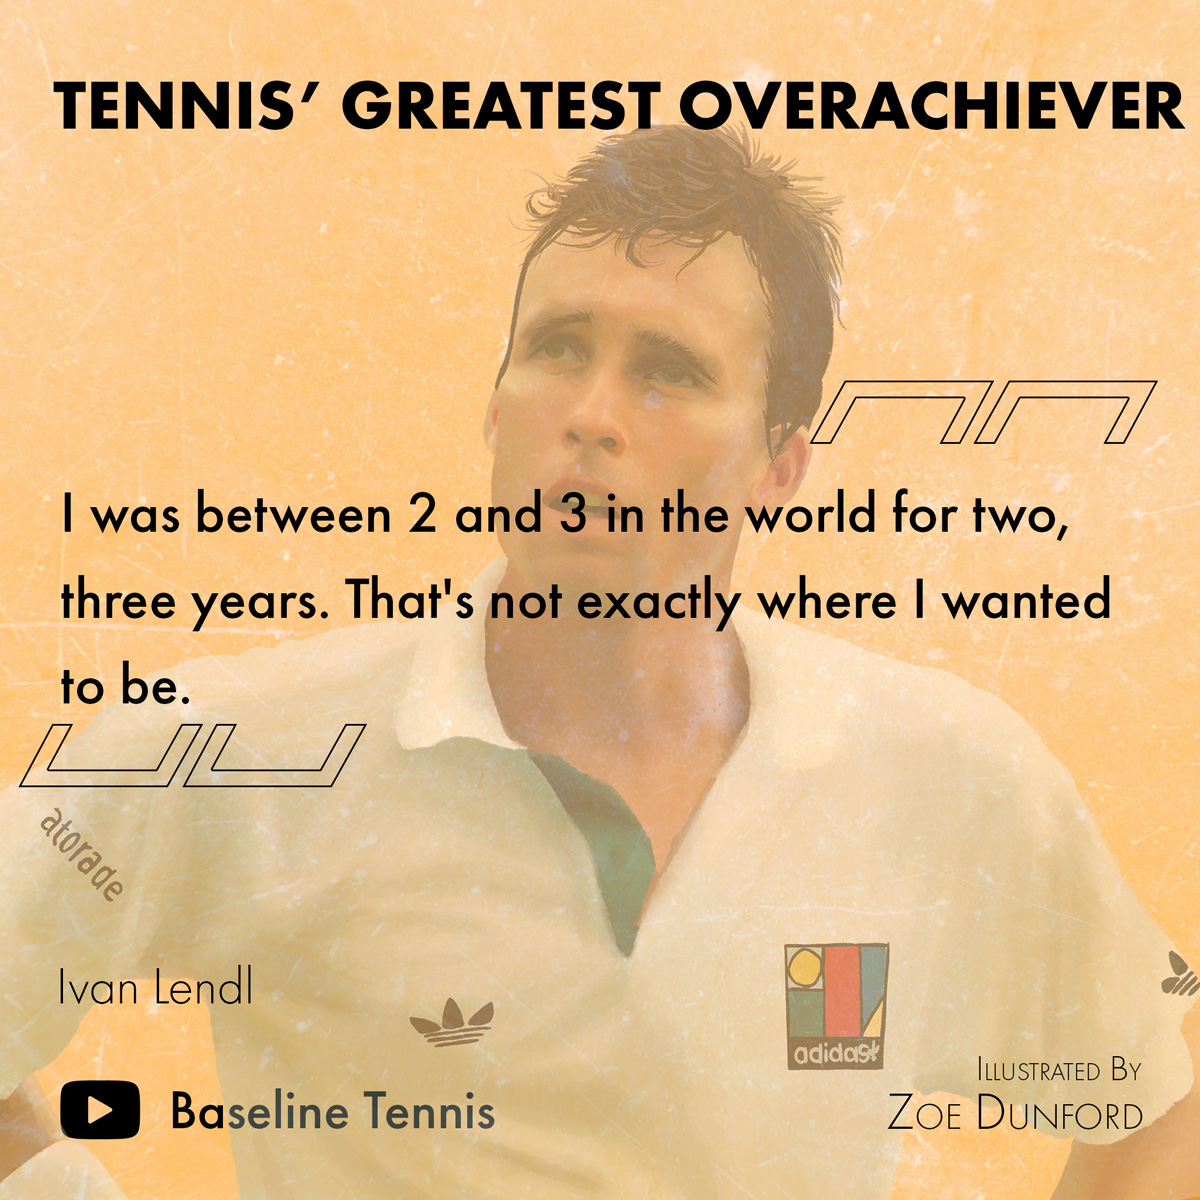 More so than any other tennis champion, Lendl systematised what it takes to perform consistently at a peak level.   🎬 @HarryBmotion & @cviner87 on Ivan Lendl: Tennis' Greatest Overachiever. 👀📺👇    #lendl #tennis #ATPCup #atptour #ATP #usopen